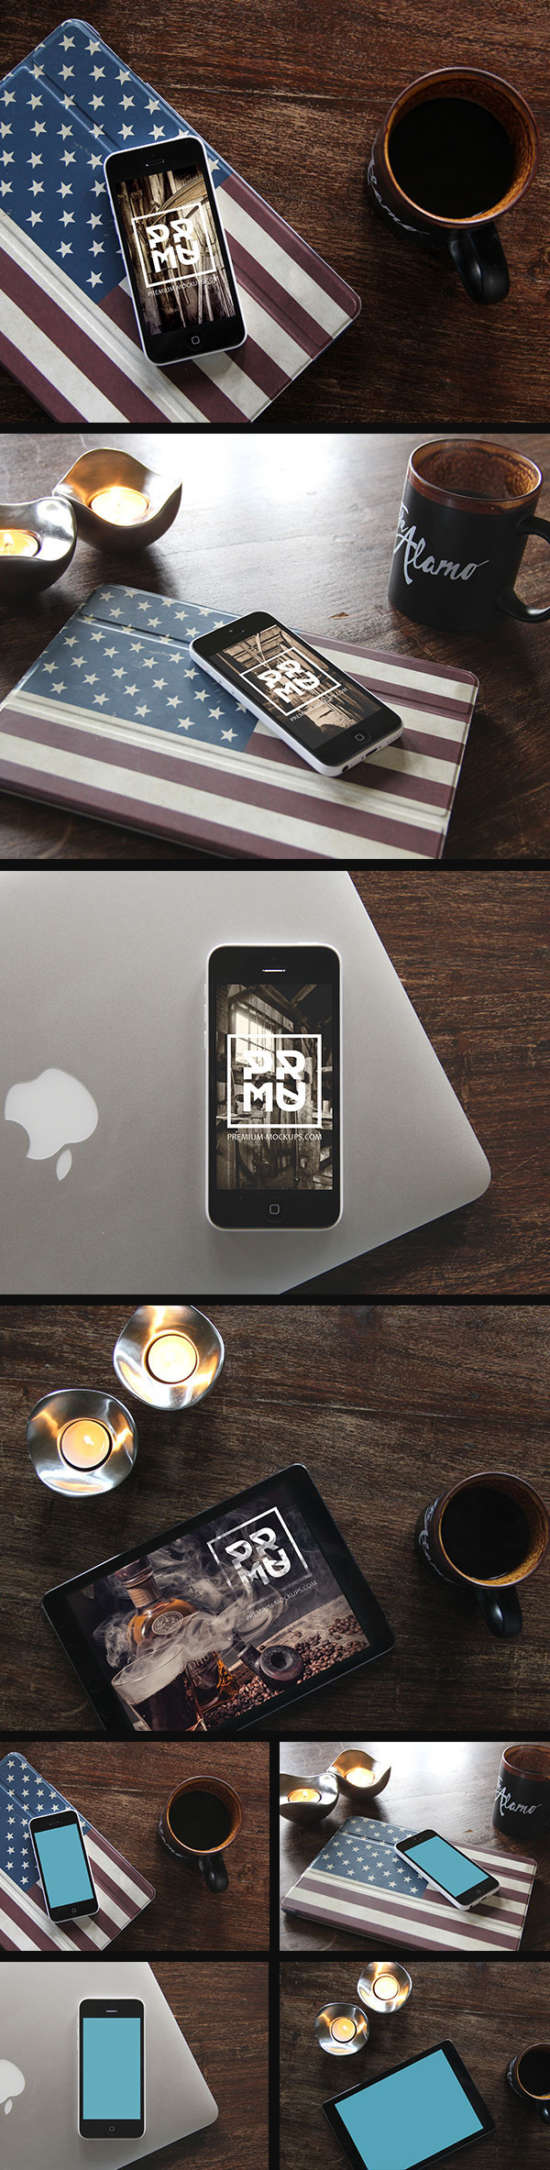 free_psd_mockup_collection